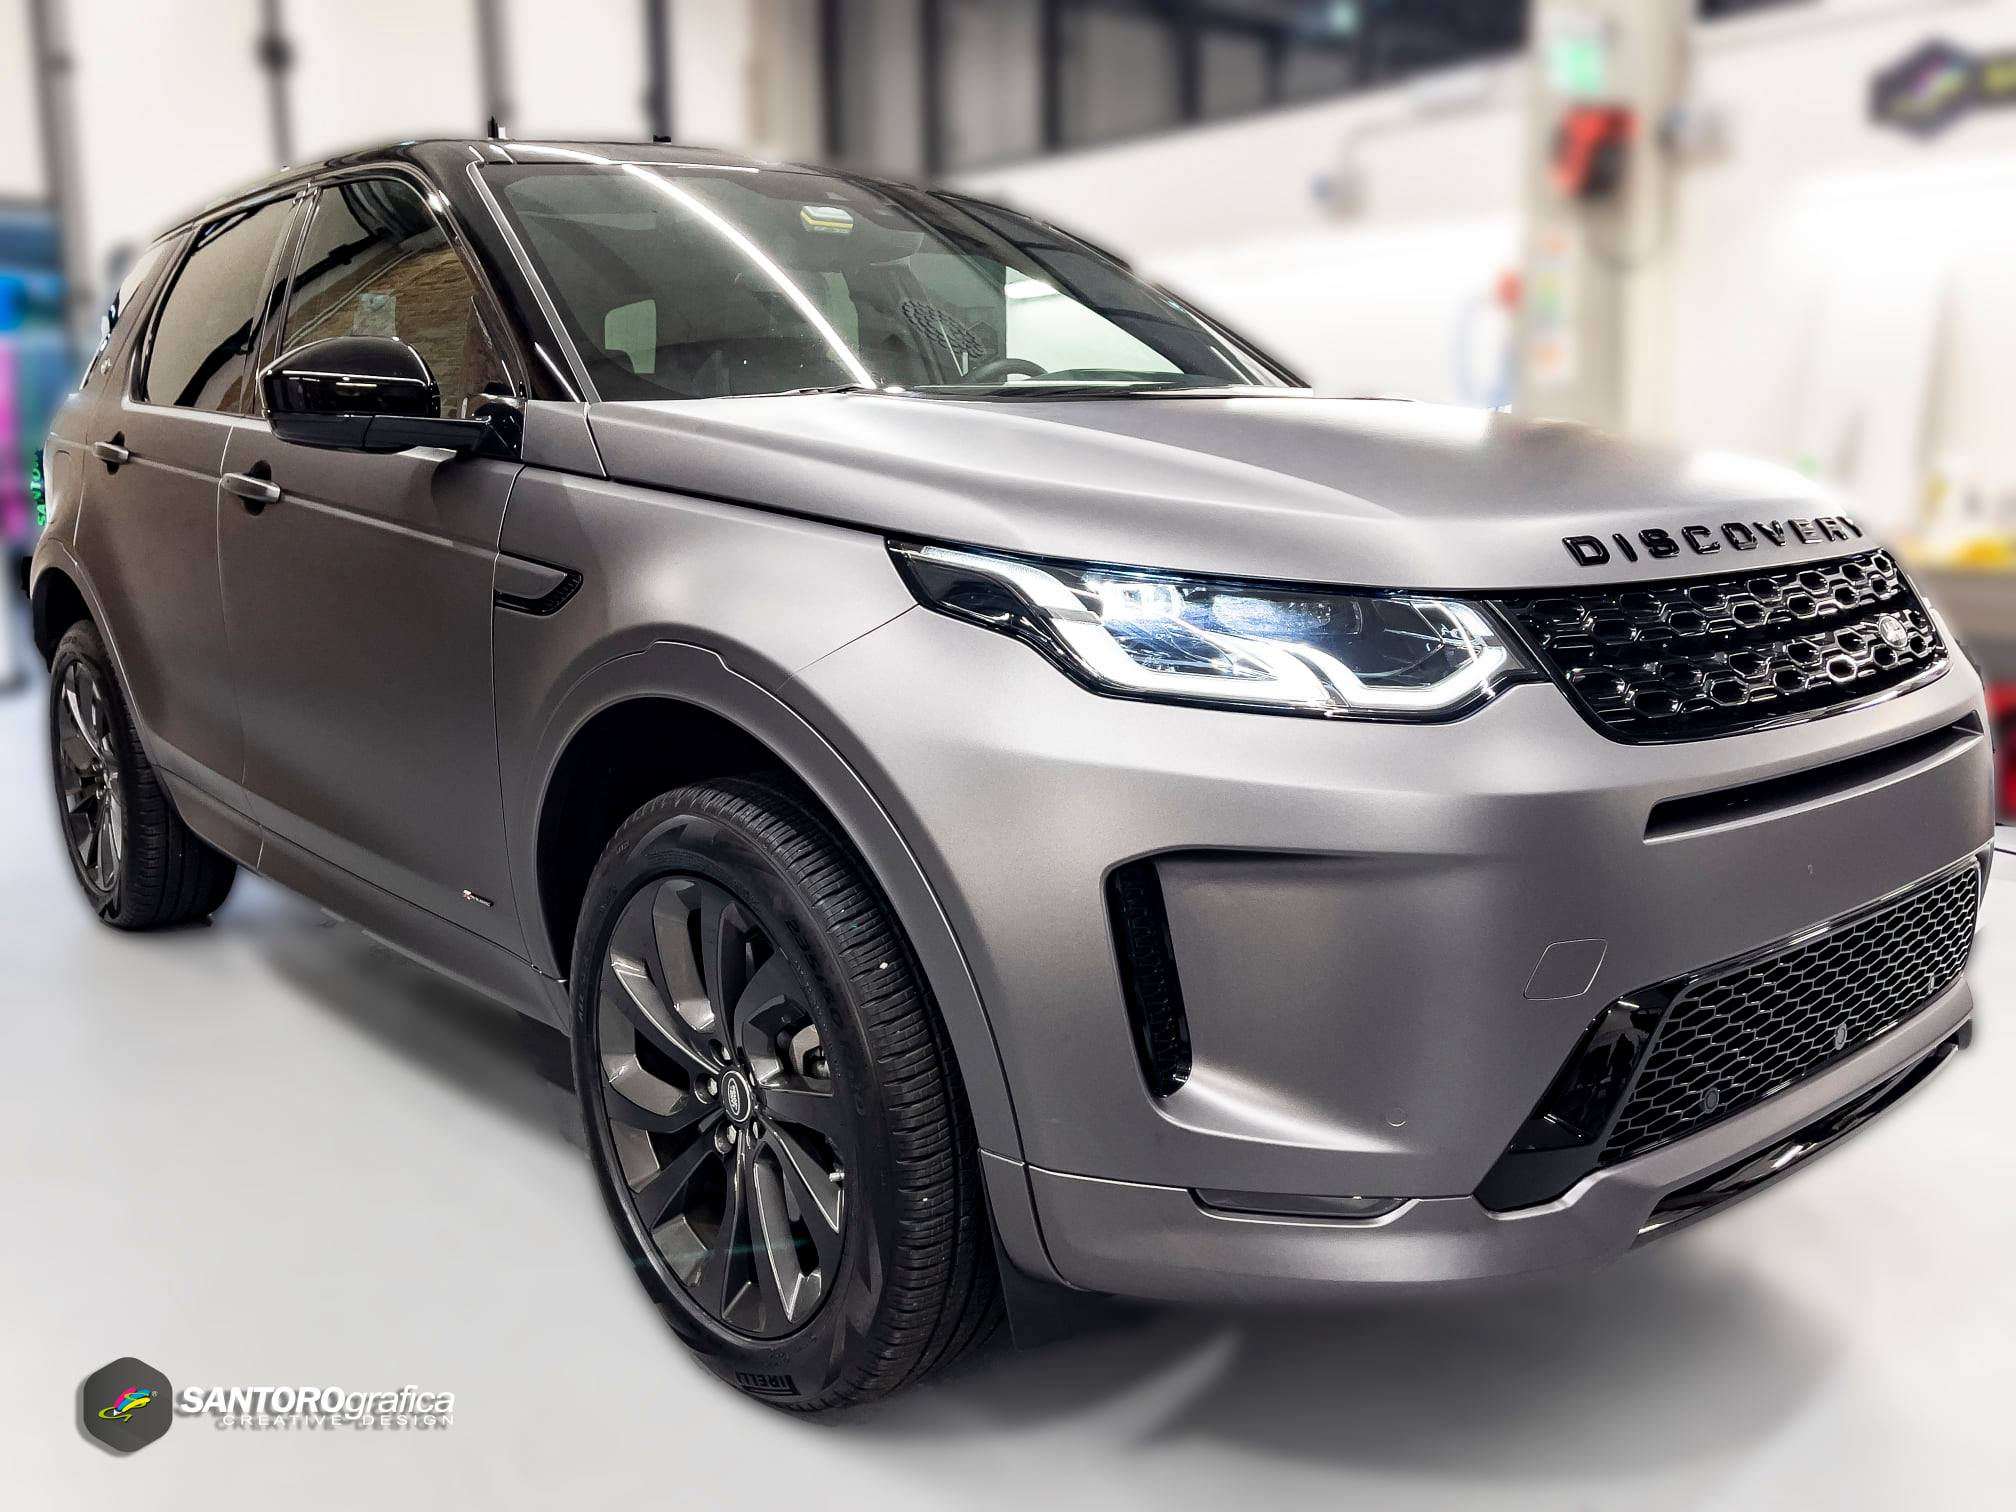 car wrapping land rover discovery grigio 6